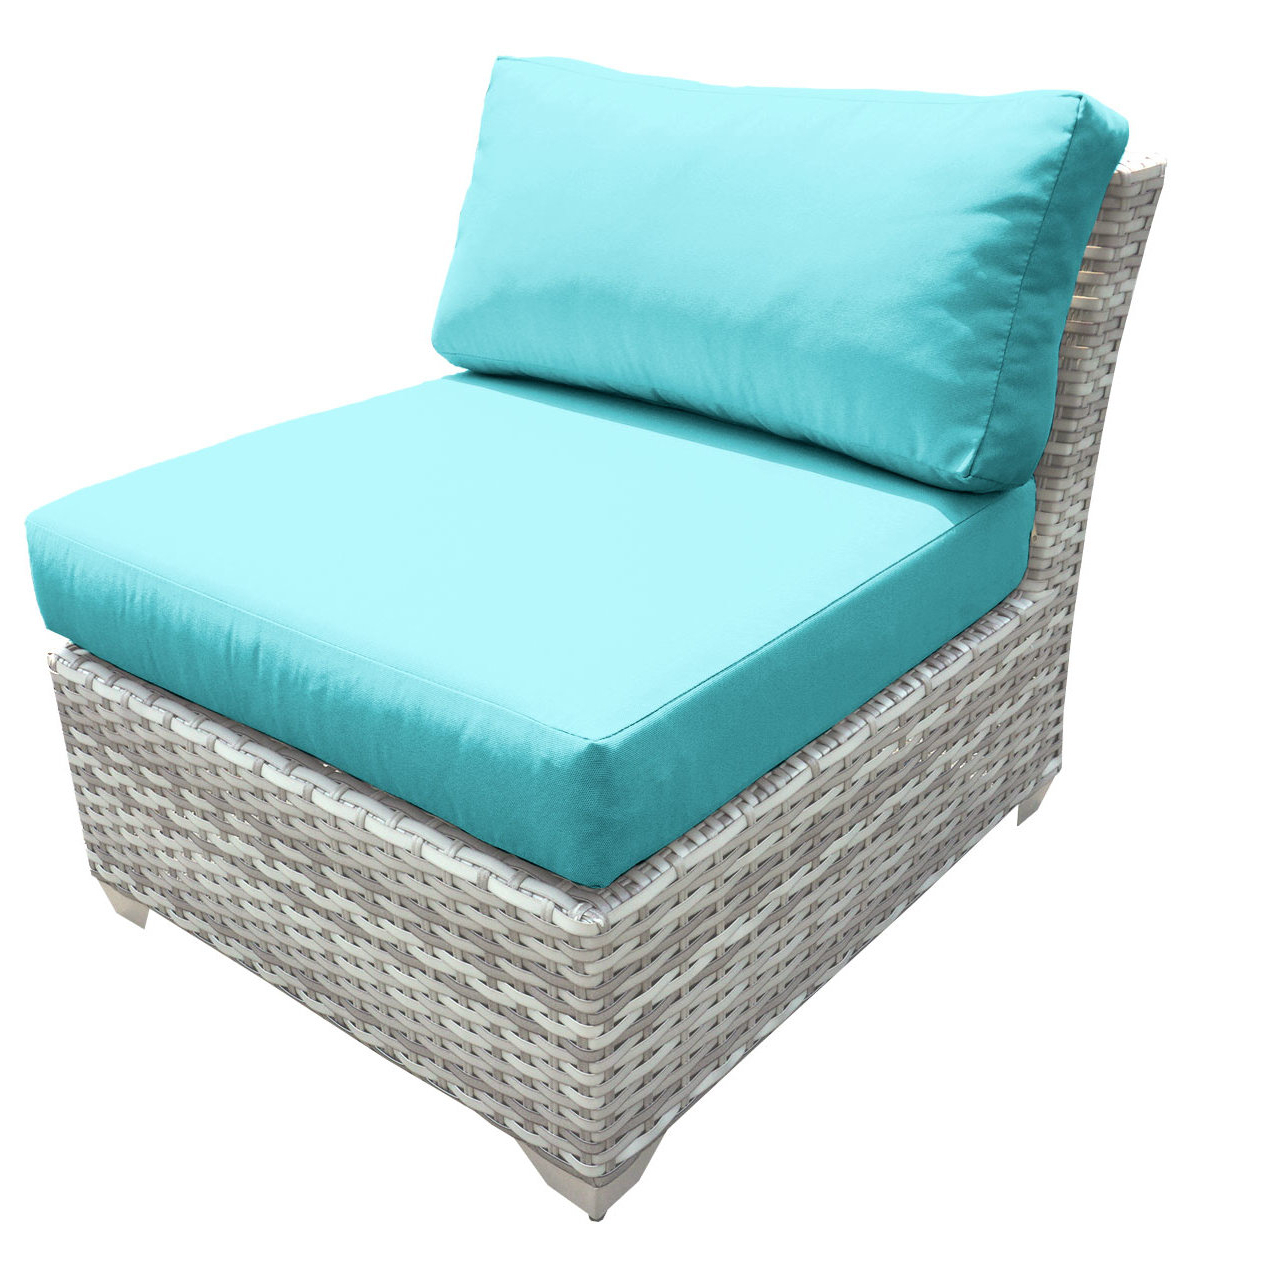 Falmouth Patio Sofas With Cushions With Regard To Trendy Falmouth Armless Patio Chair With Cushions (View 15 of 20)